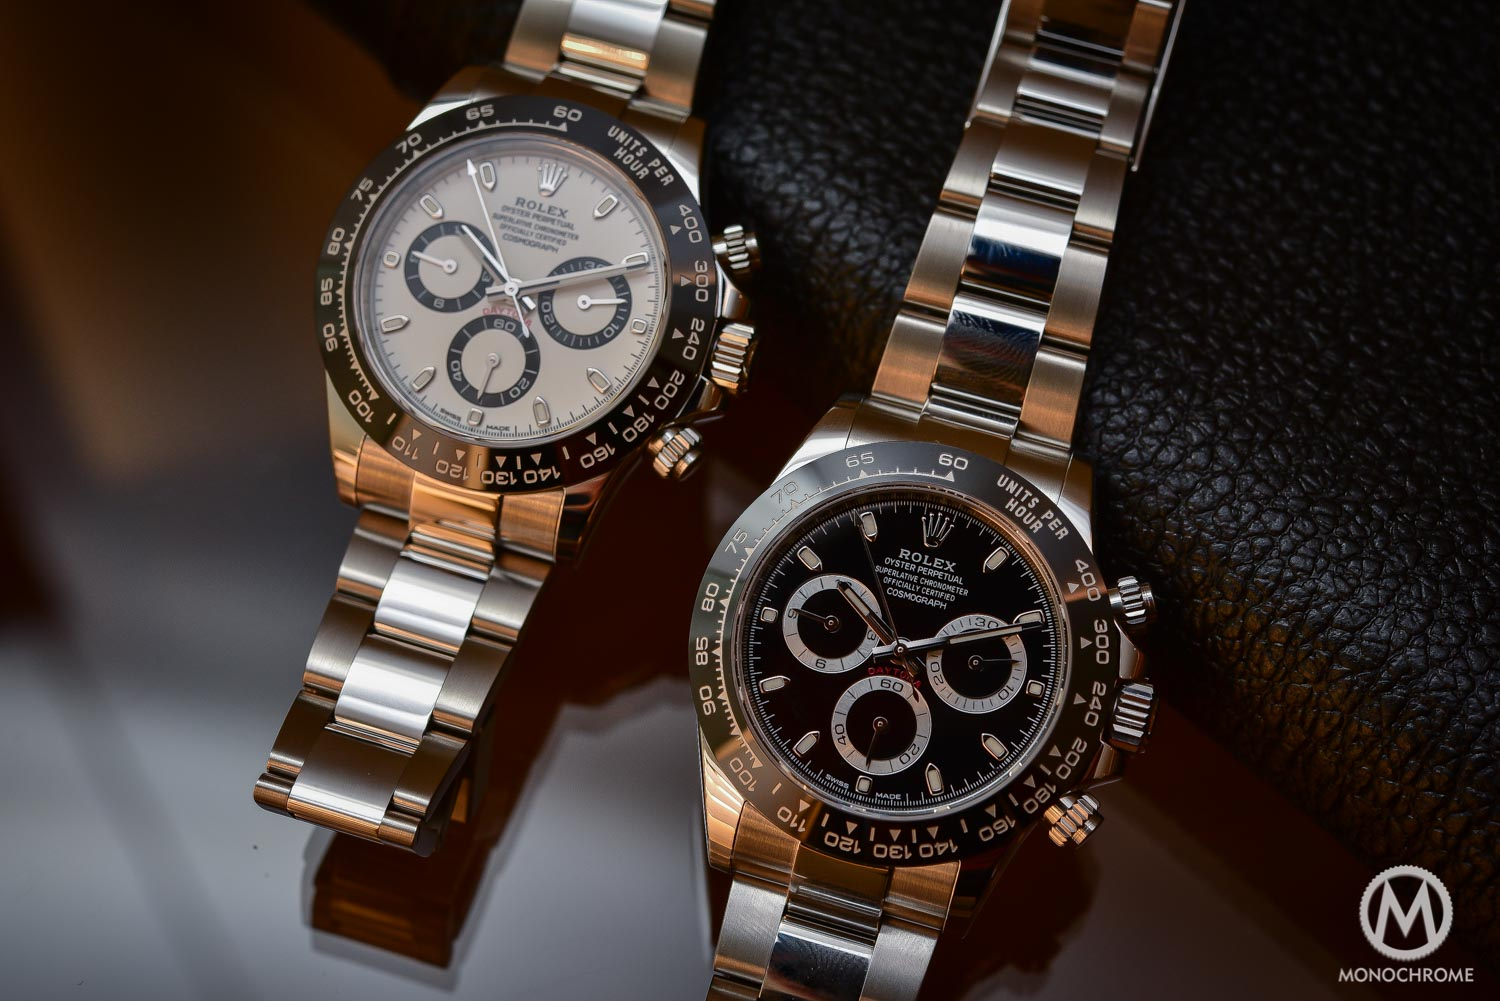 Rolex Daytona 116500LN in steel Cerachrom ceramic black bezel - 1